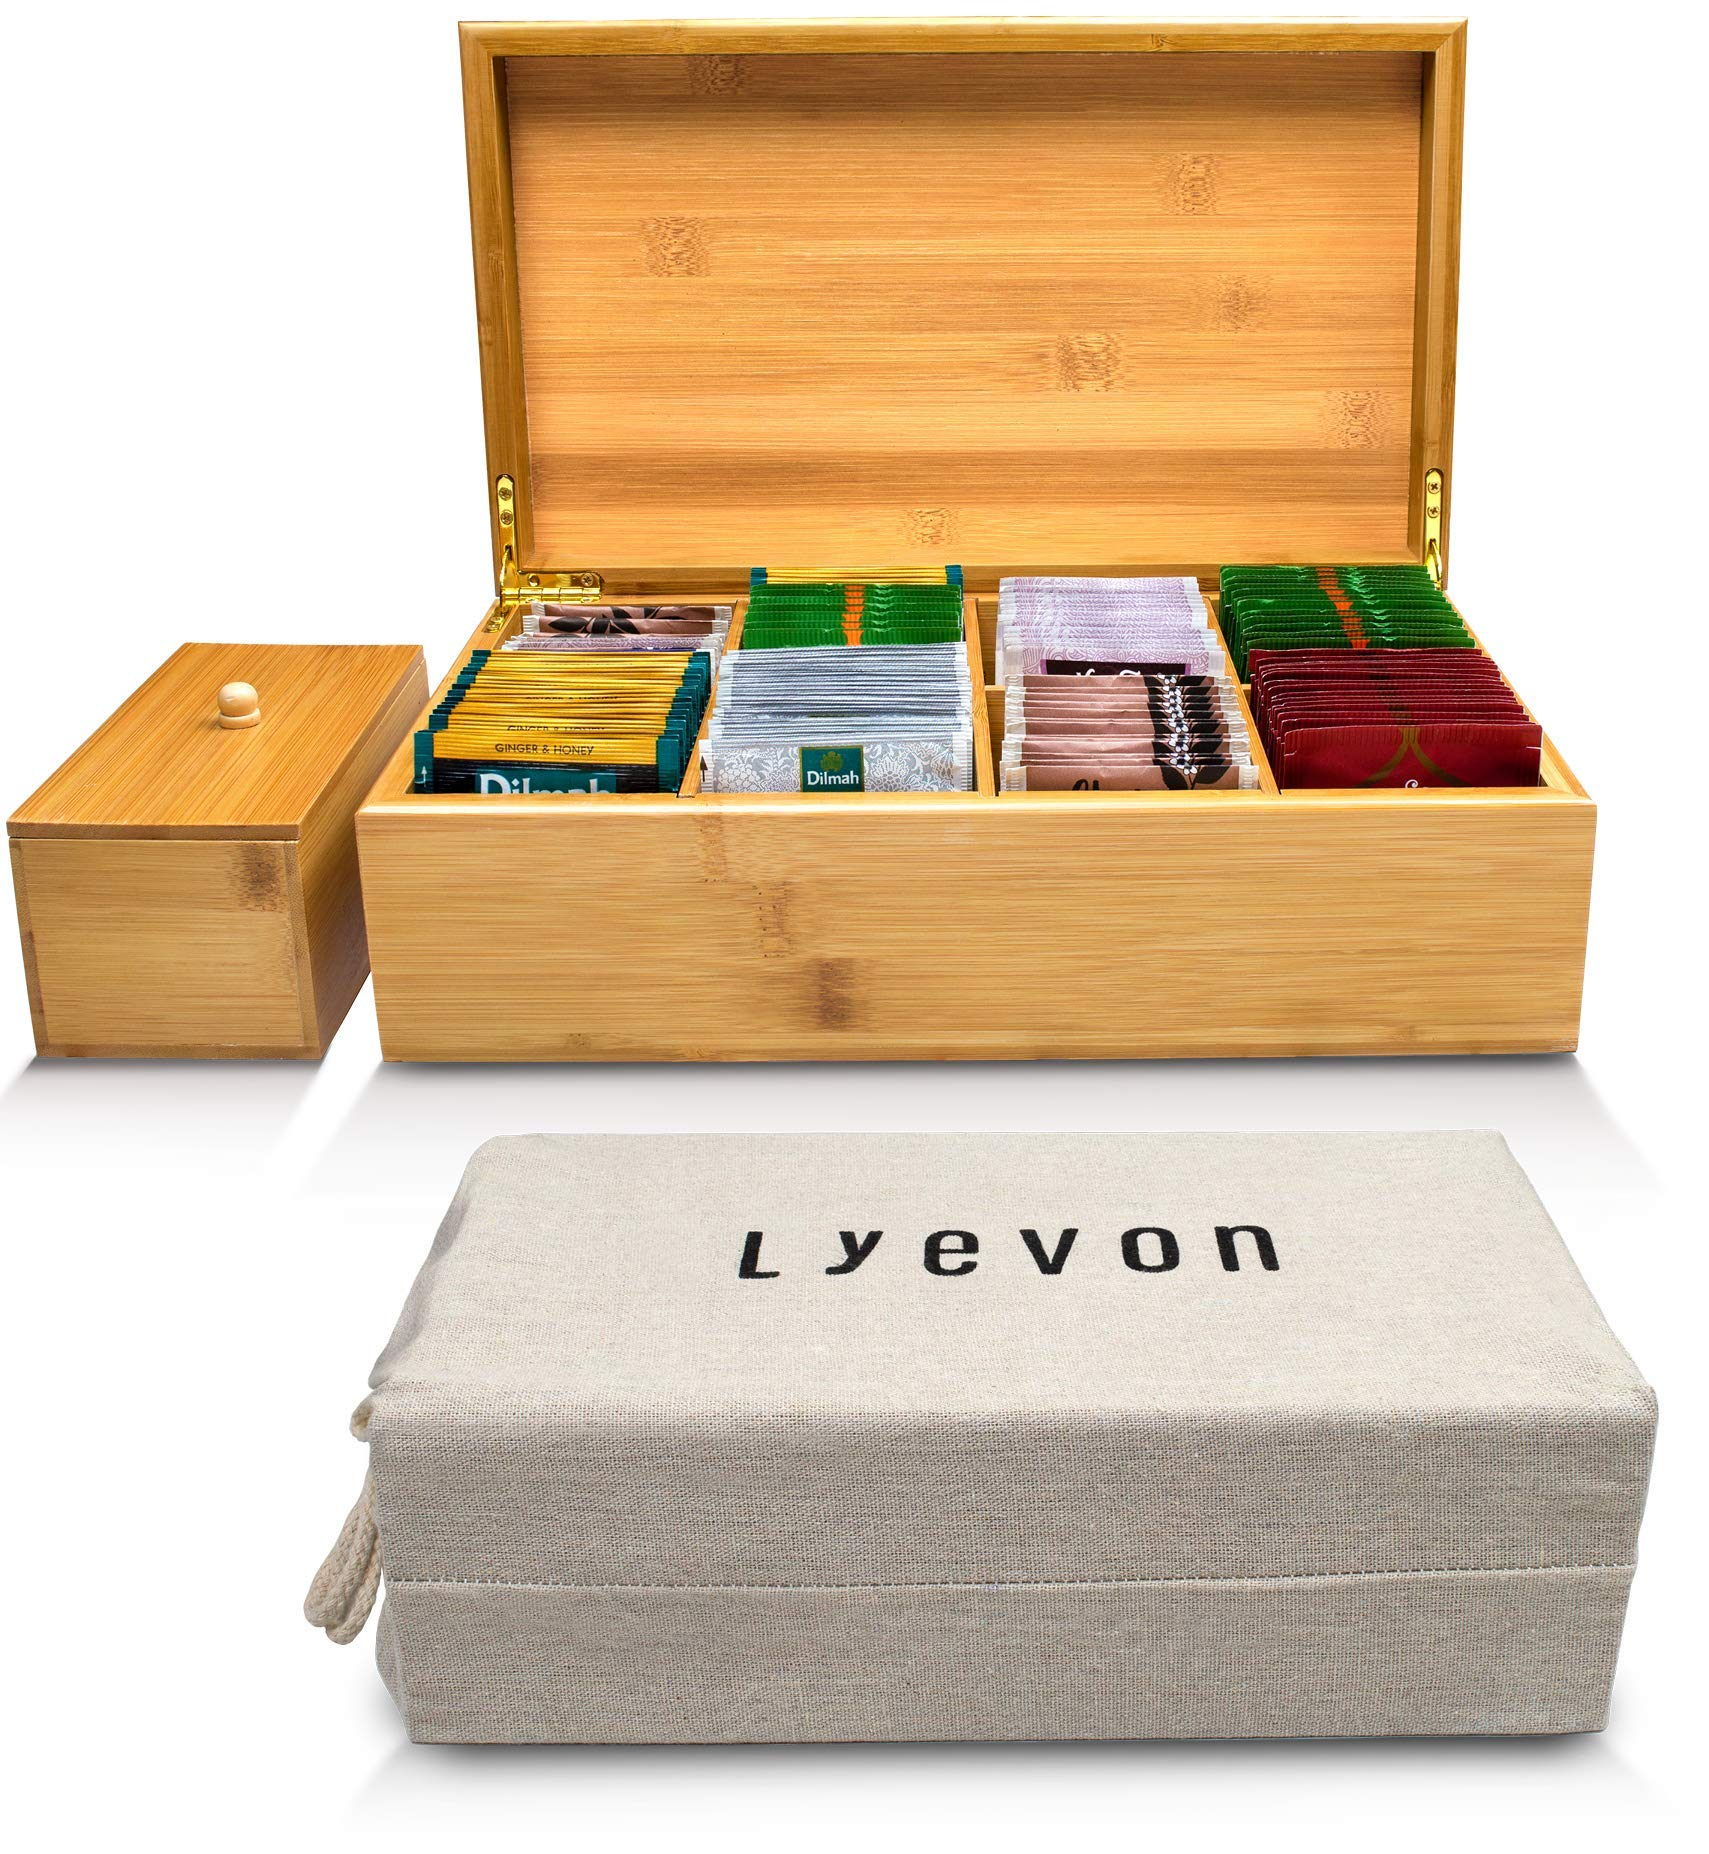 Lyevon Tea Storage Organizer Bamboo Chest Box with 8 Adjustable Compartments for Assorted Tea Bags or Spices -holds 125 Tea Bags by Lyevon (Image #1)